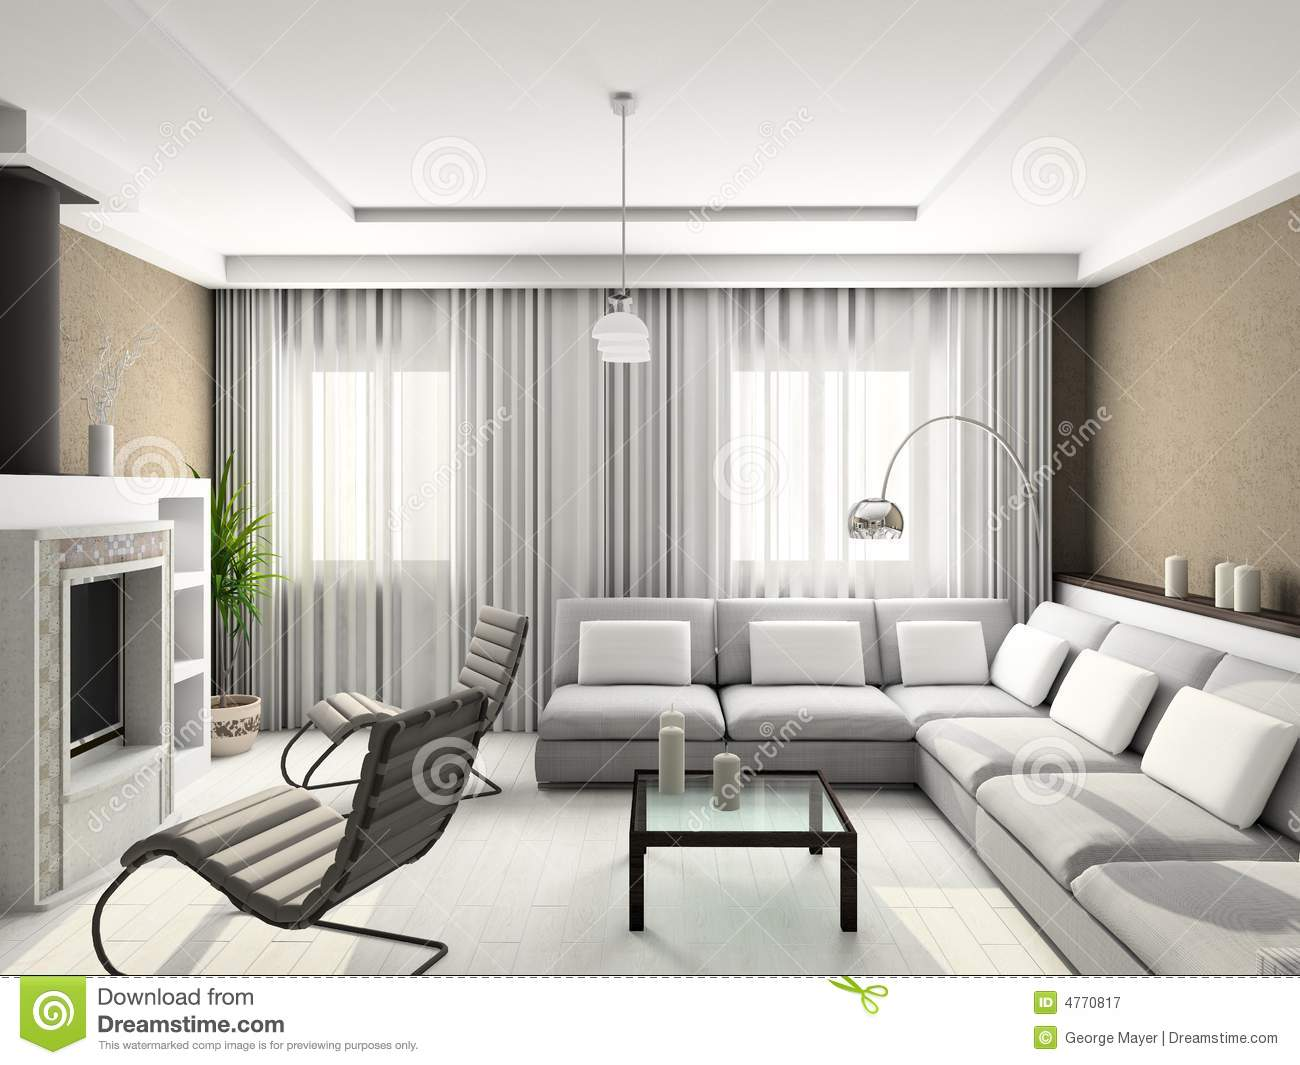 3D Render Modern Interior Of Living room Stock Image   Image of     3D render modern interior of living room  Minimalism  chamber